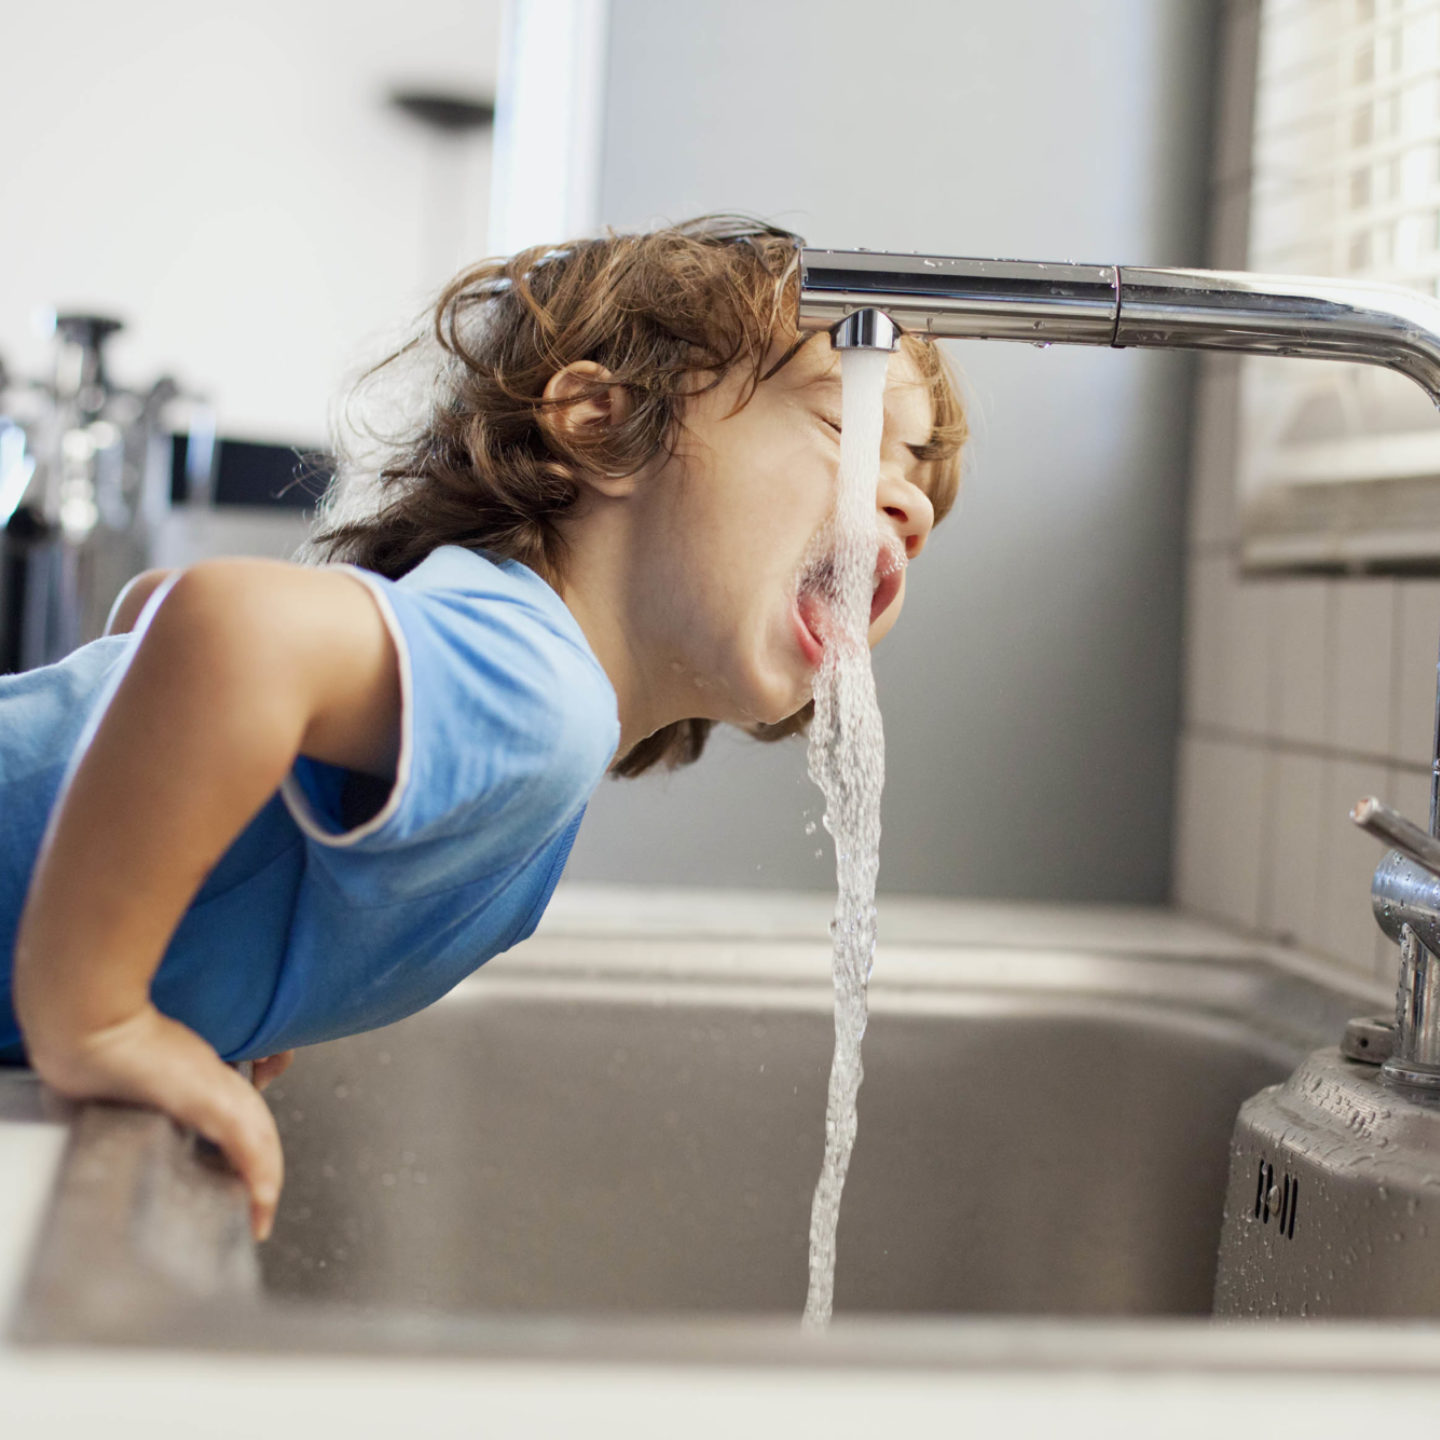 Boy drinking water from tap